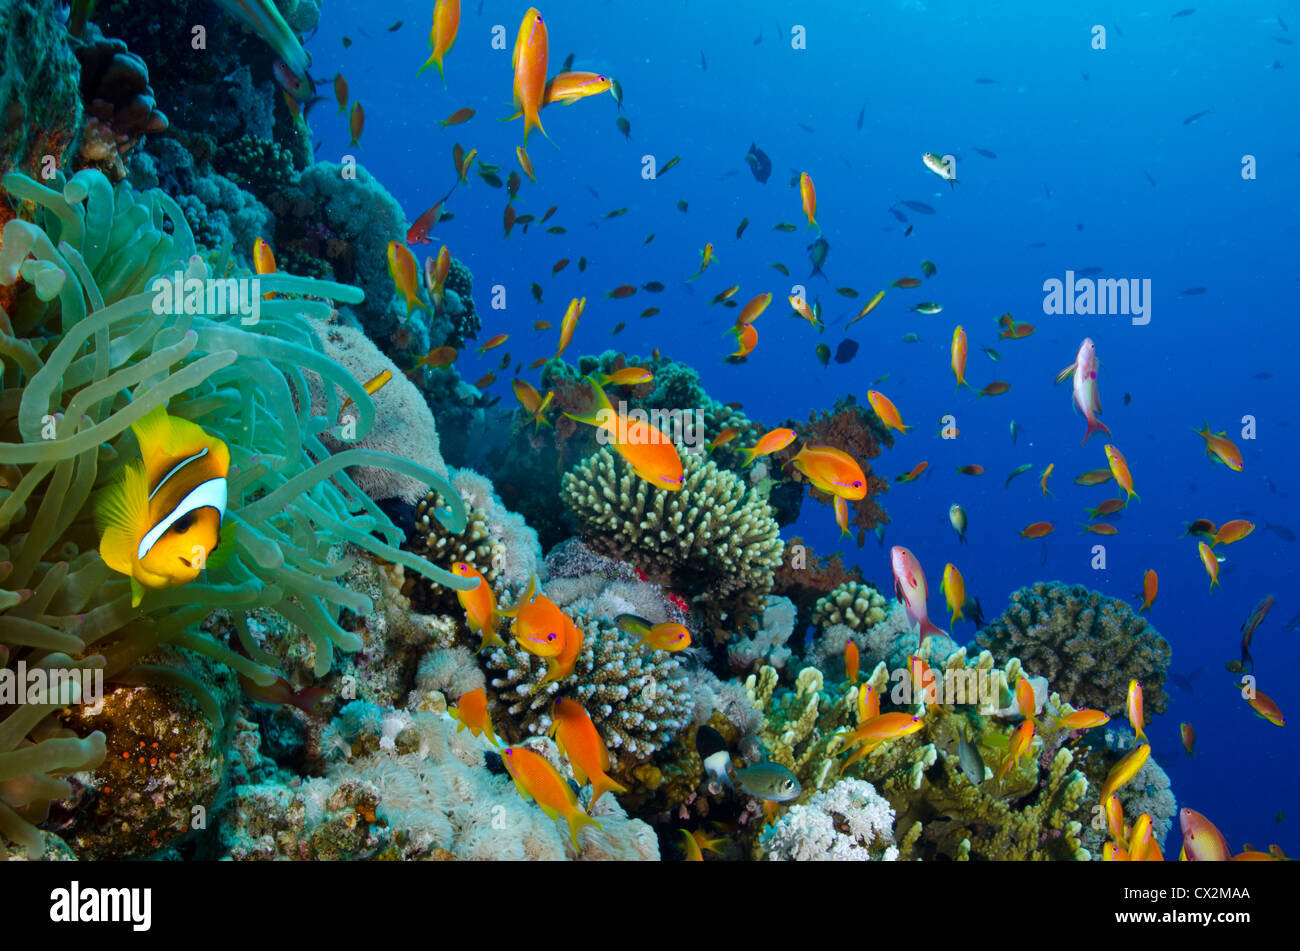 Coral Reef Red Sea Egypt Underwater Tropical Reef